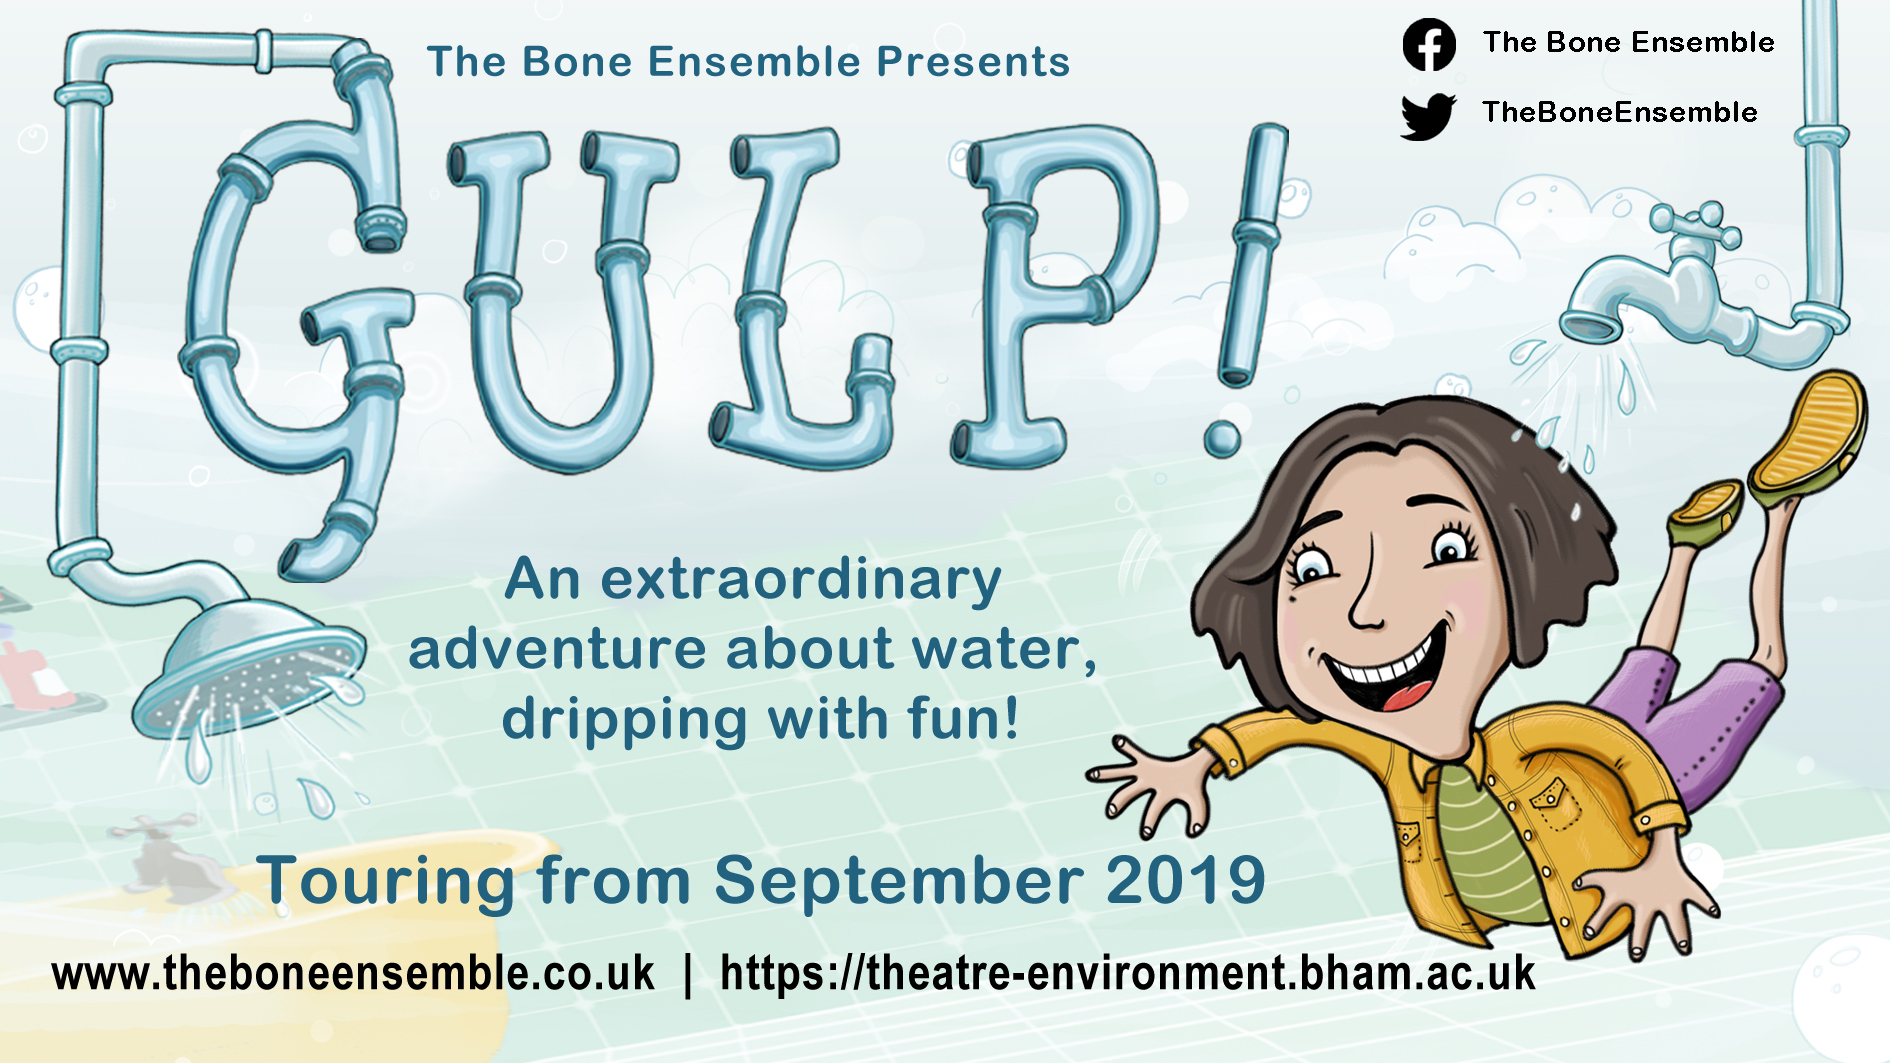 Gulp! promotional poster